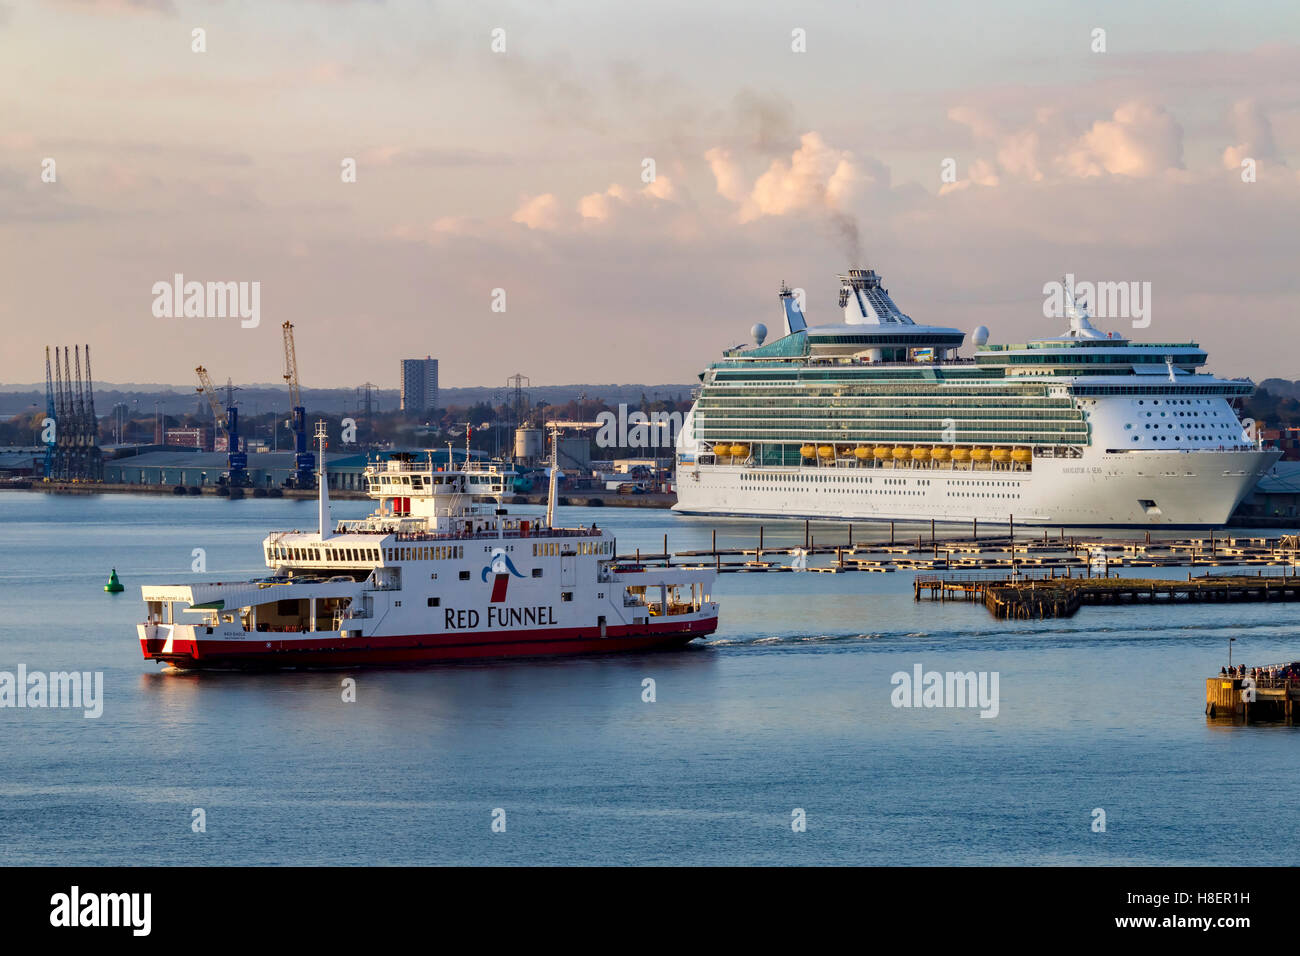 Royal Caribbeans Navigator of the seas moored in Southampton Docks and a Red Funnel ferry leaving port. - Stock Image